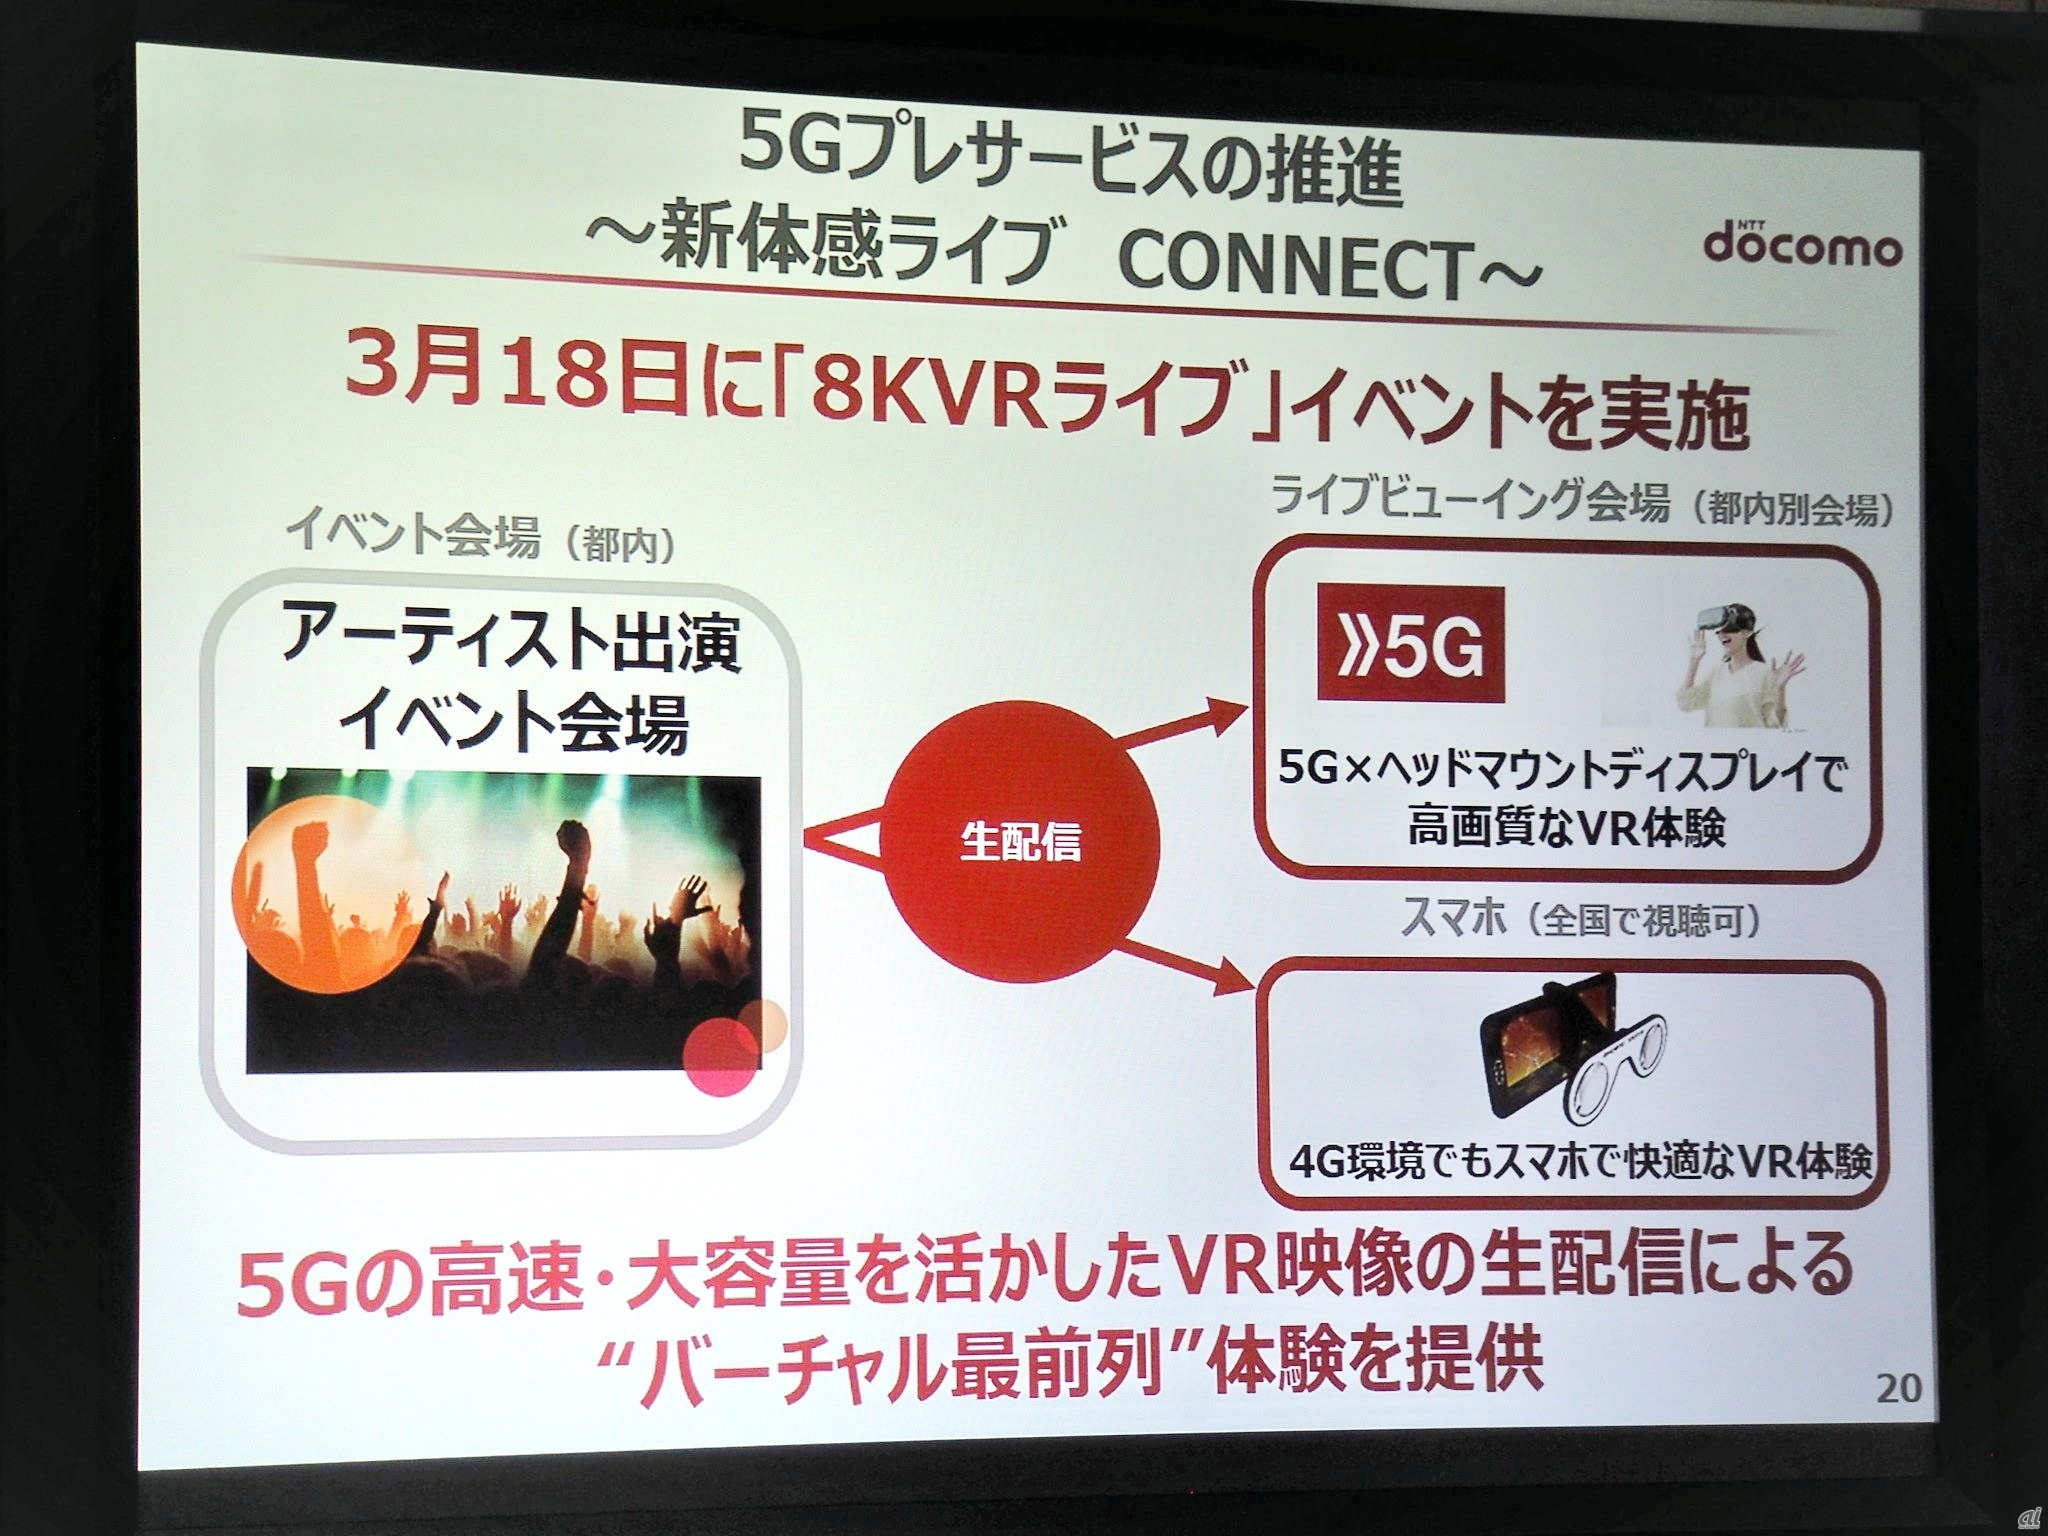 There is no specific schedule or content for the launch of 5G services in the spring of 2020. Live viewing of 8KVR utilizing 5G to be implemented on March 18, 2020, it is not decided at this stage whether it will be implemented as pre-service or official service